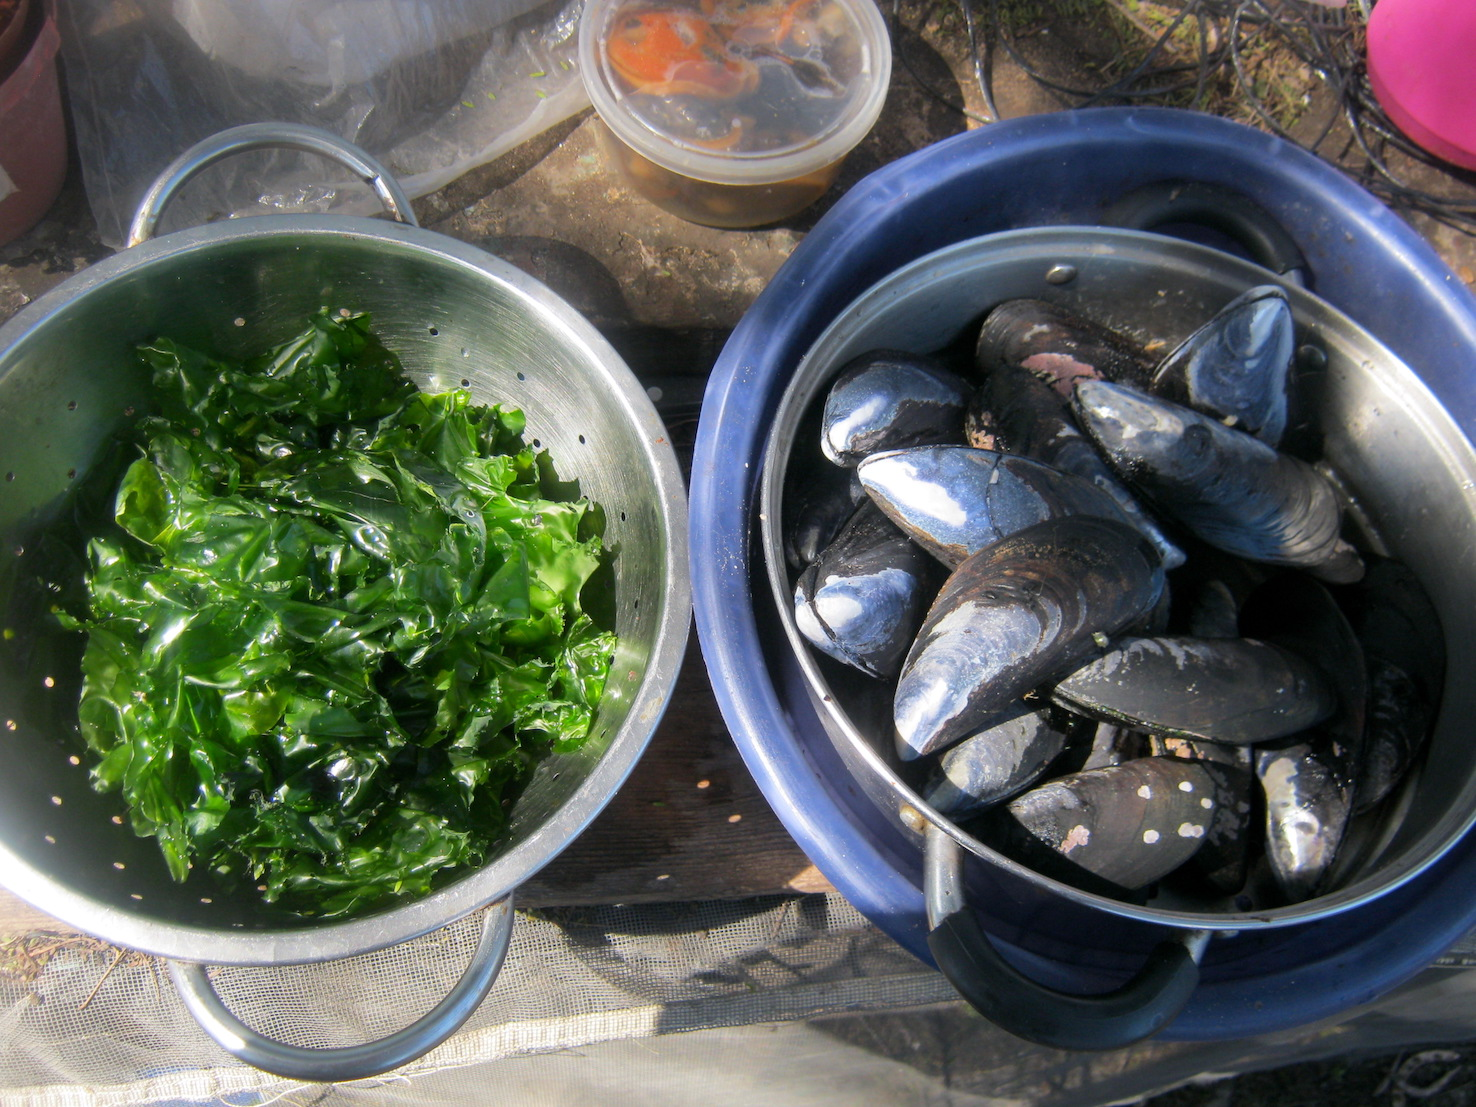 Black mussels and sea lettuce fresh from the sea